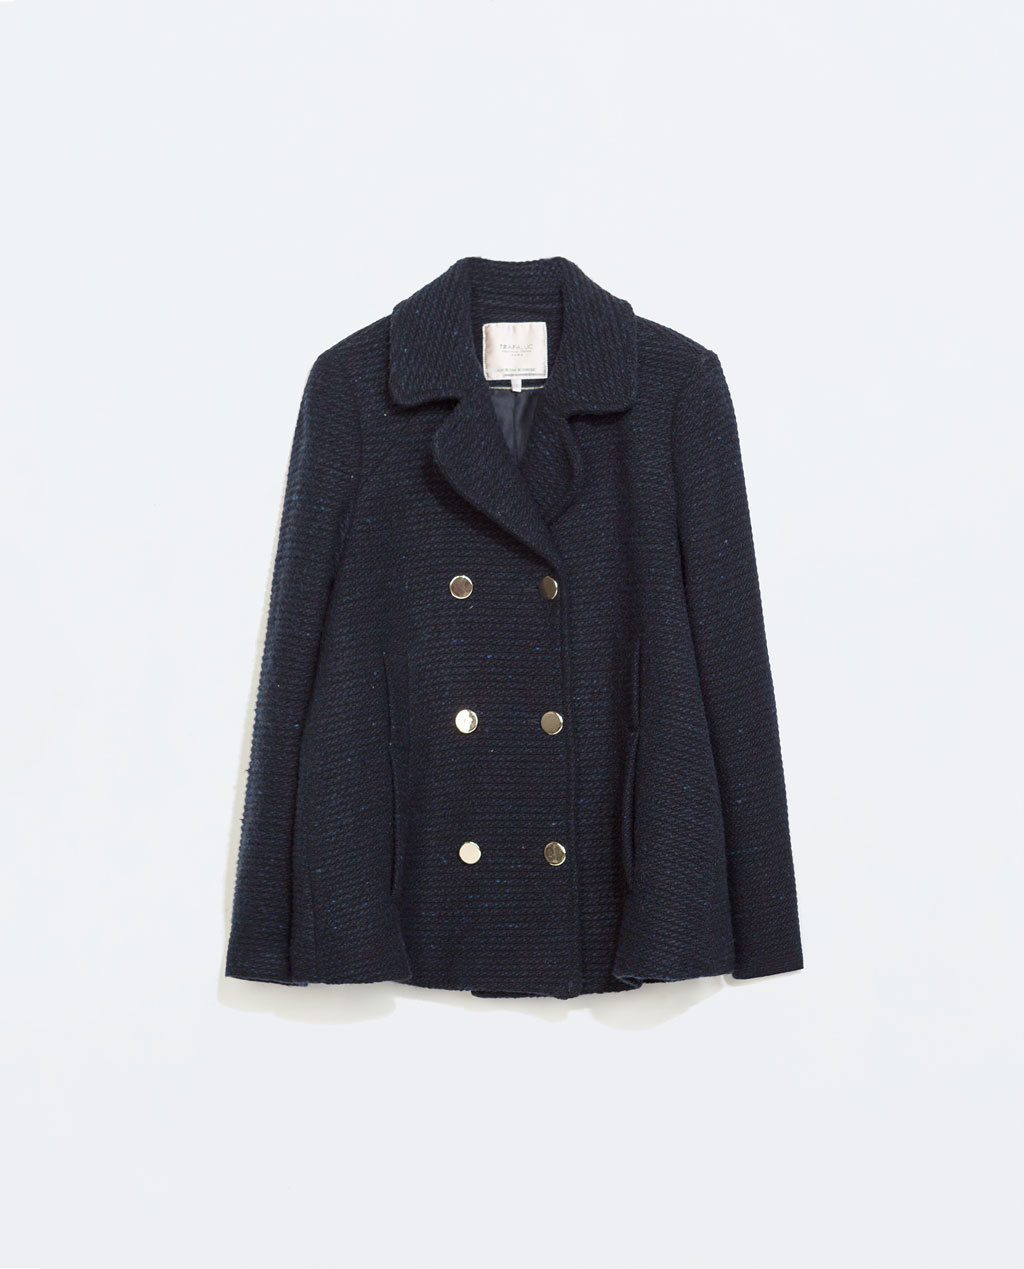 Cape Coat - pattern: plain; length: below the bottom; style: double breasted; collar: standard lapel/rever collar; predominant colour: navy; secondary colour: gold; occasions: casual, creative work; fit: straight cut (boxy); fibres: wool - mix; sleeve length: long sleeve; sleeve style: standard; collar break: medium; pattern type: fabric; texture group: woven bulky/heavy; trends: outerwear chic; season: a/w 2014